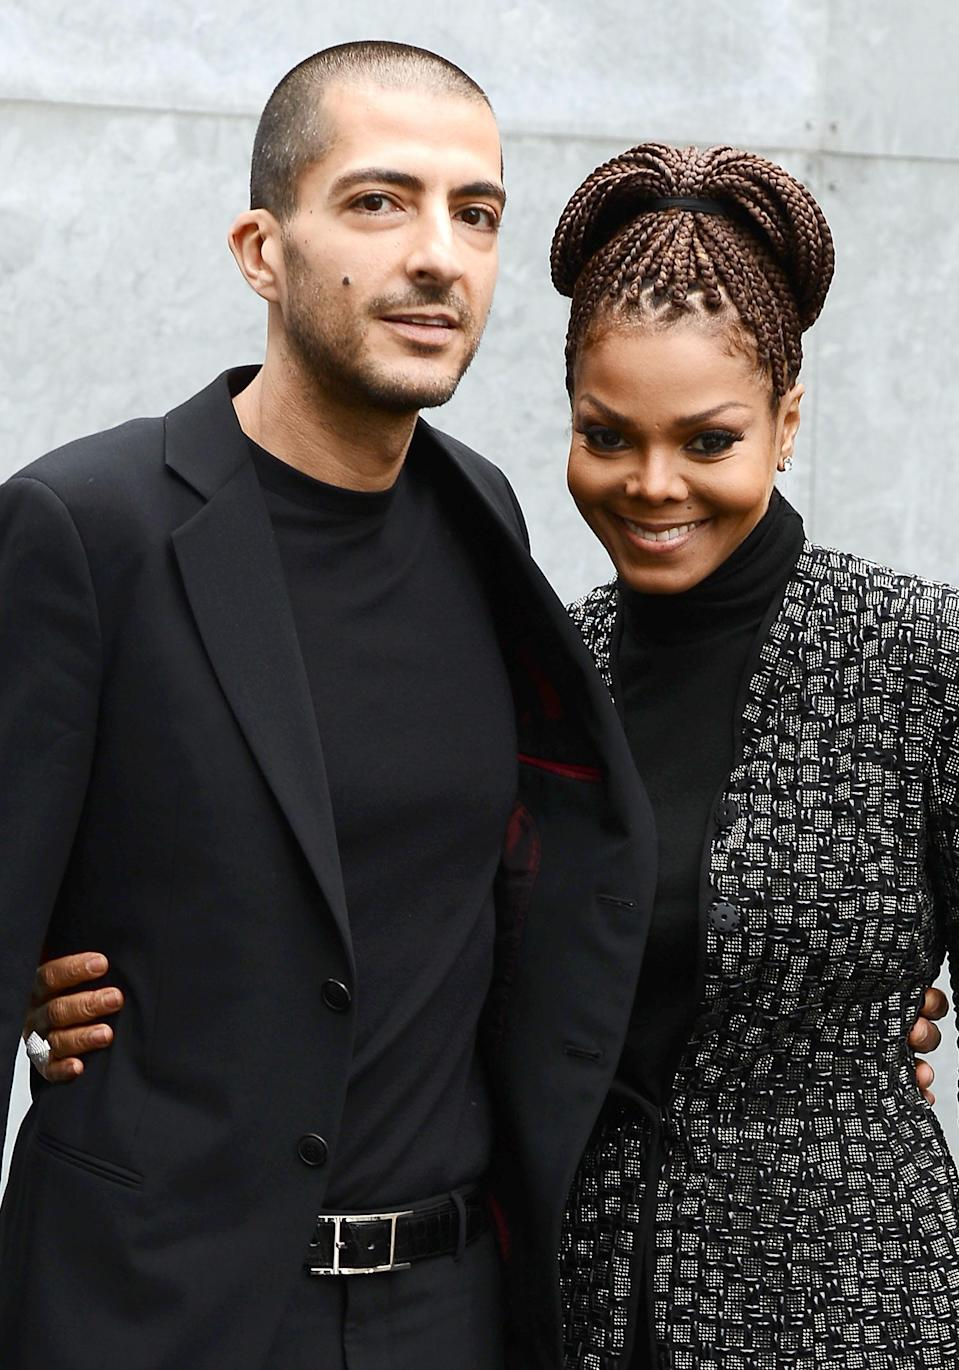 Wissam Al Mana and Janet Jackson attend the Giorgio Armani fashion show during Milan Fashion Week Womenswear Fall/Winter 2013/14 on Feb. 25, 2013, in Milan. (Photo: Venturelli/WireImage)